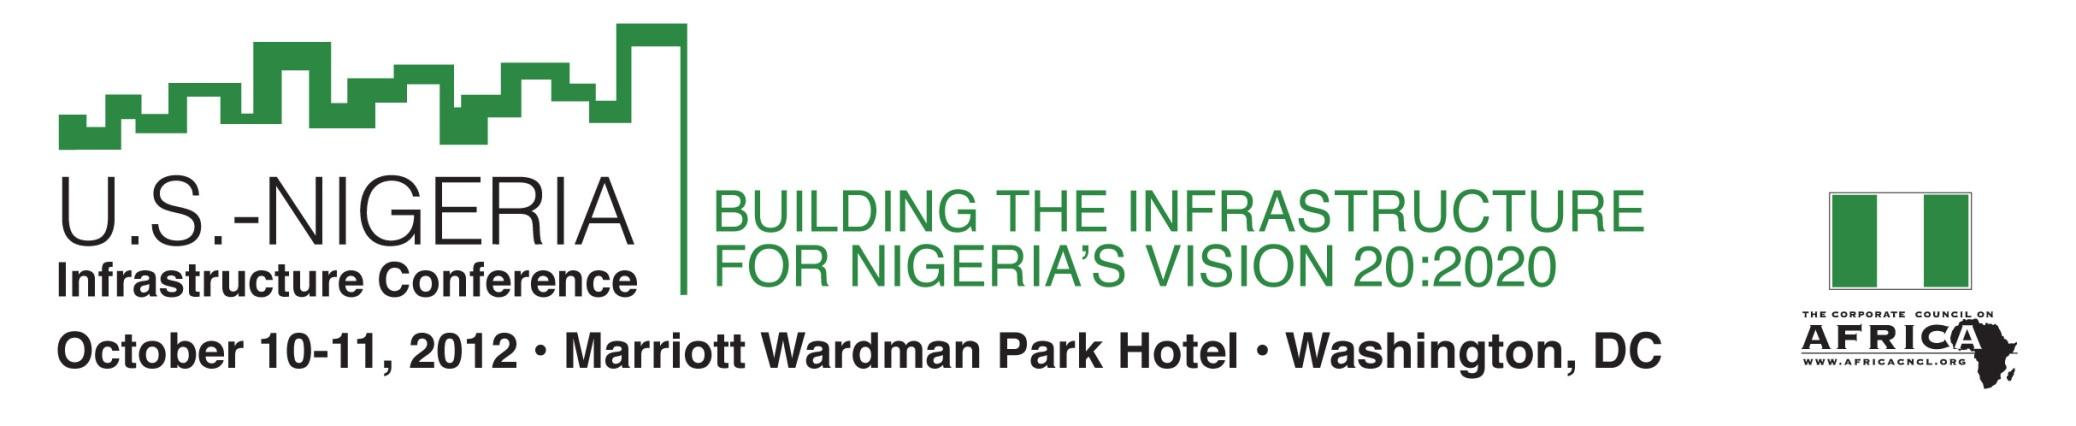 U.S.-Nigeria Infrastructure Conference: Building the Infrastructure for Vision 20:2020